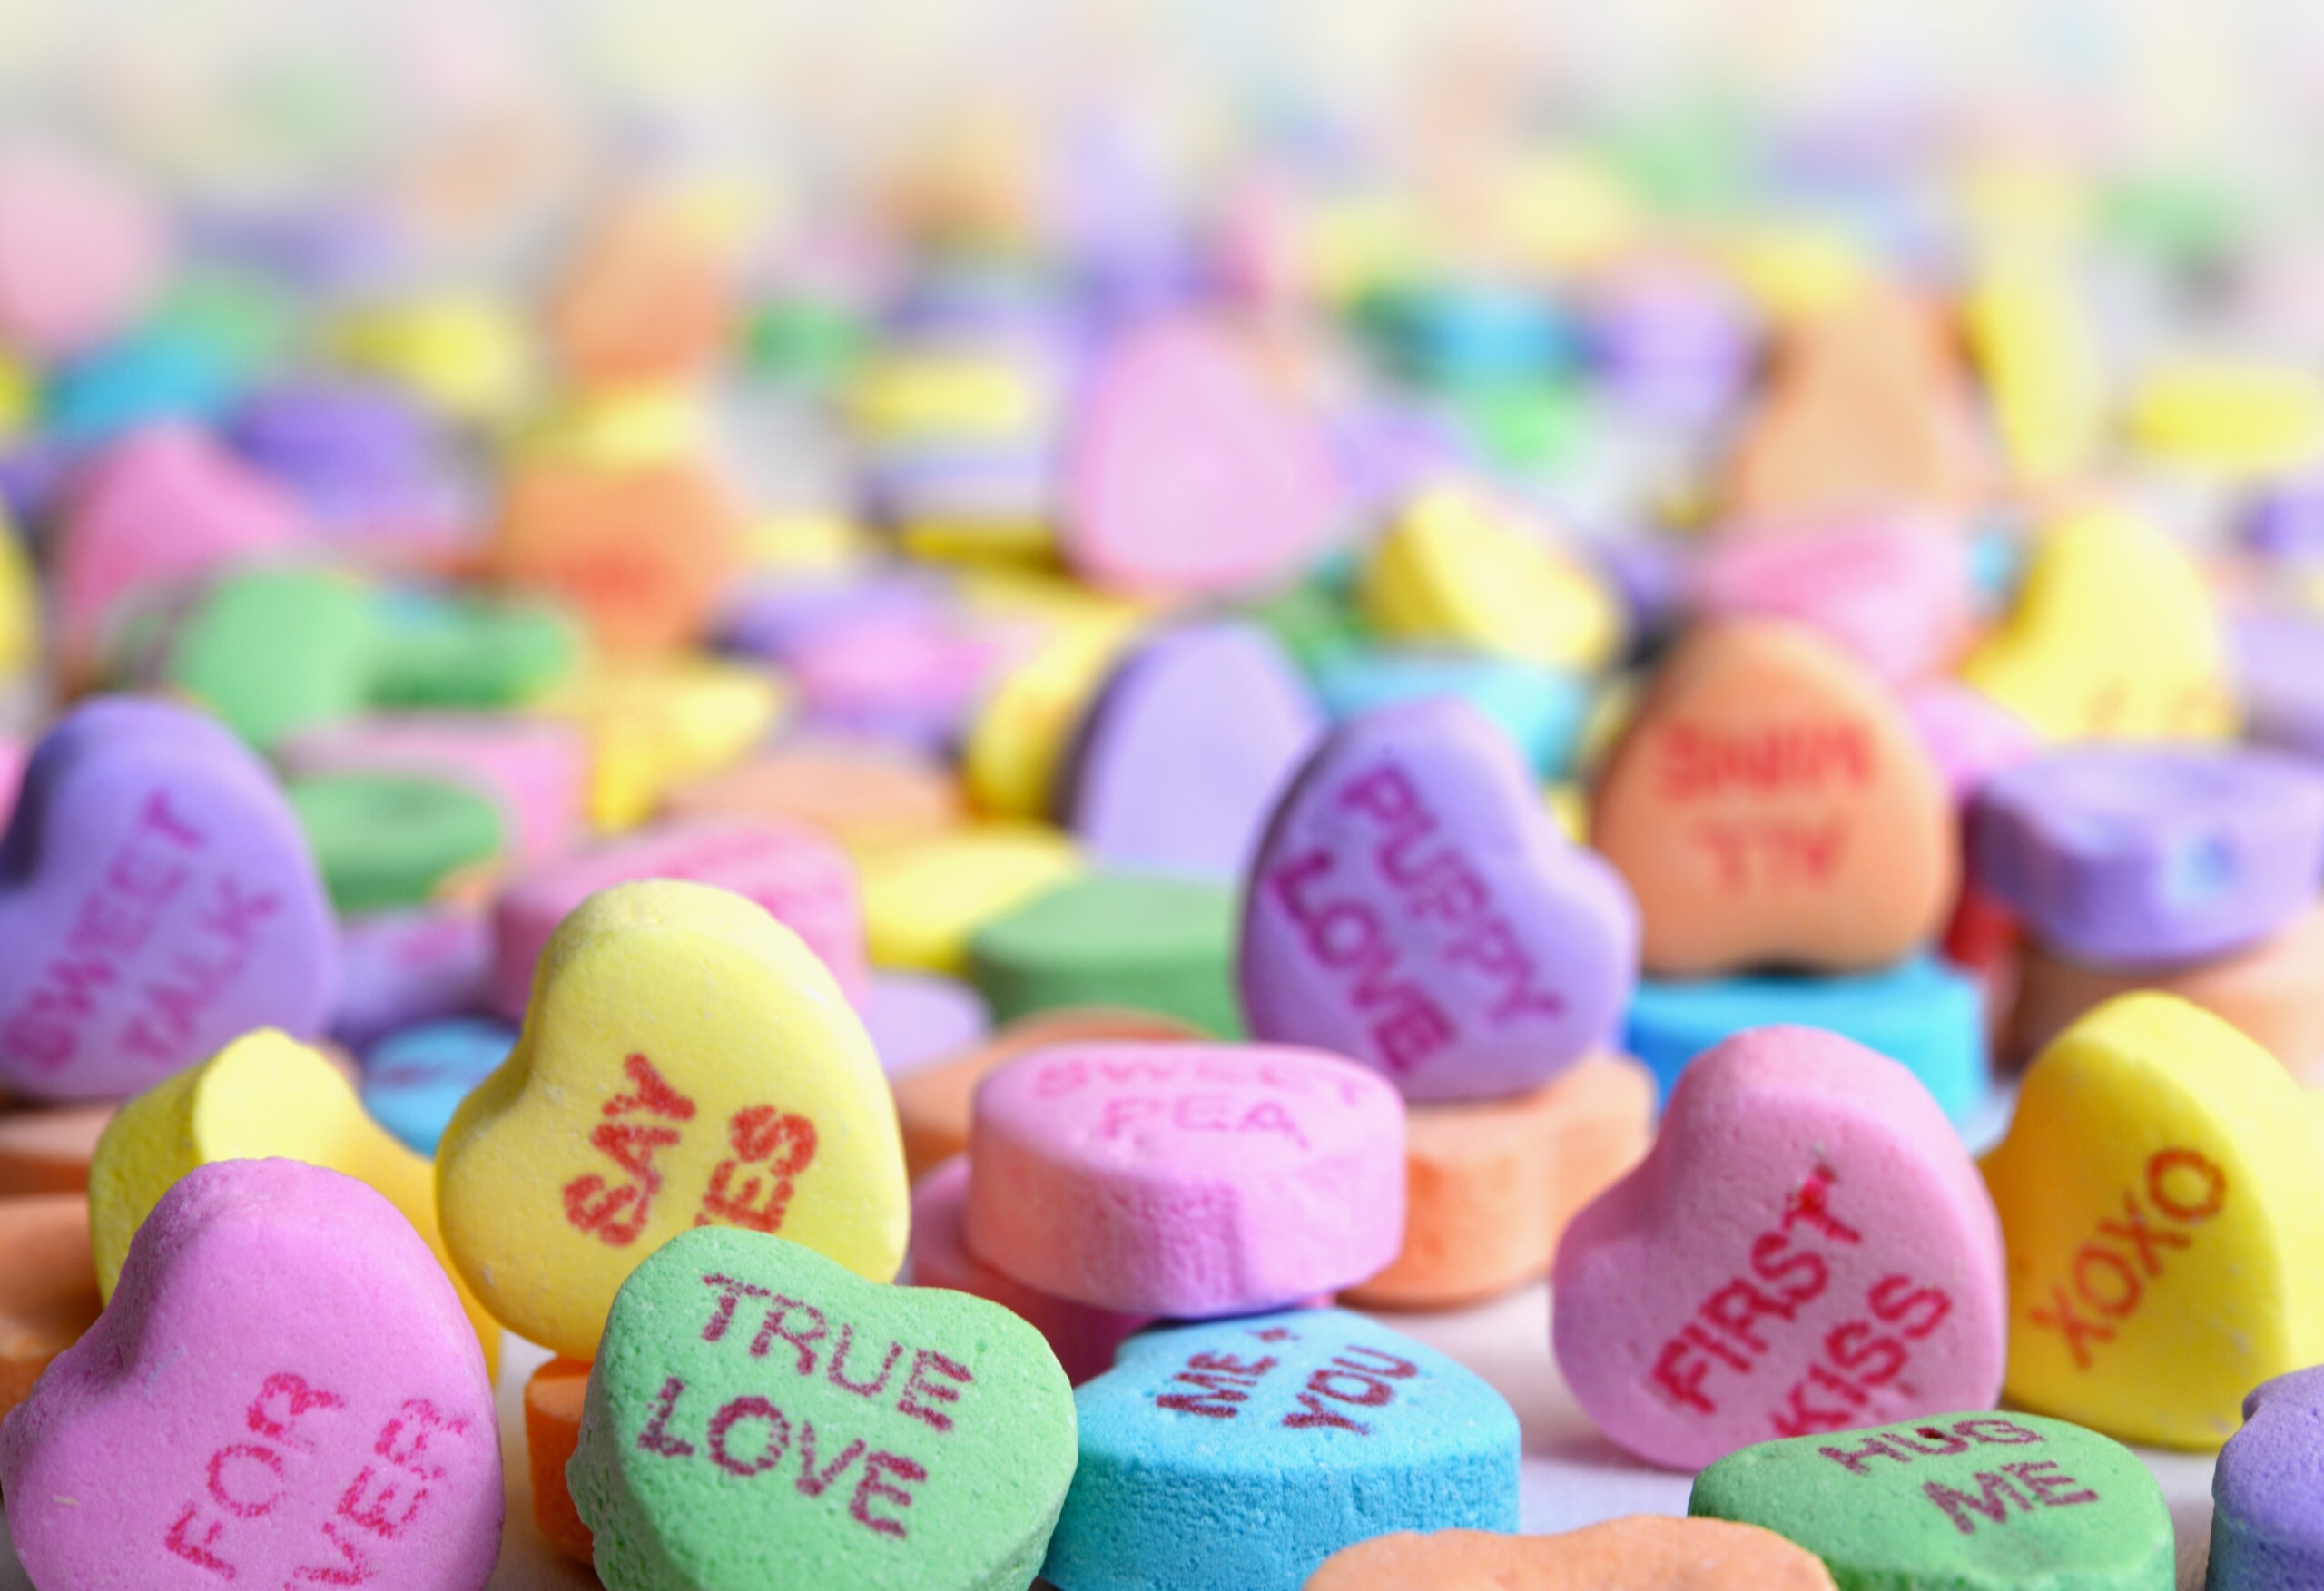 Valentine's Day Gifts for Your Fiance | Nashville Bride Guide